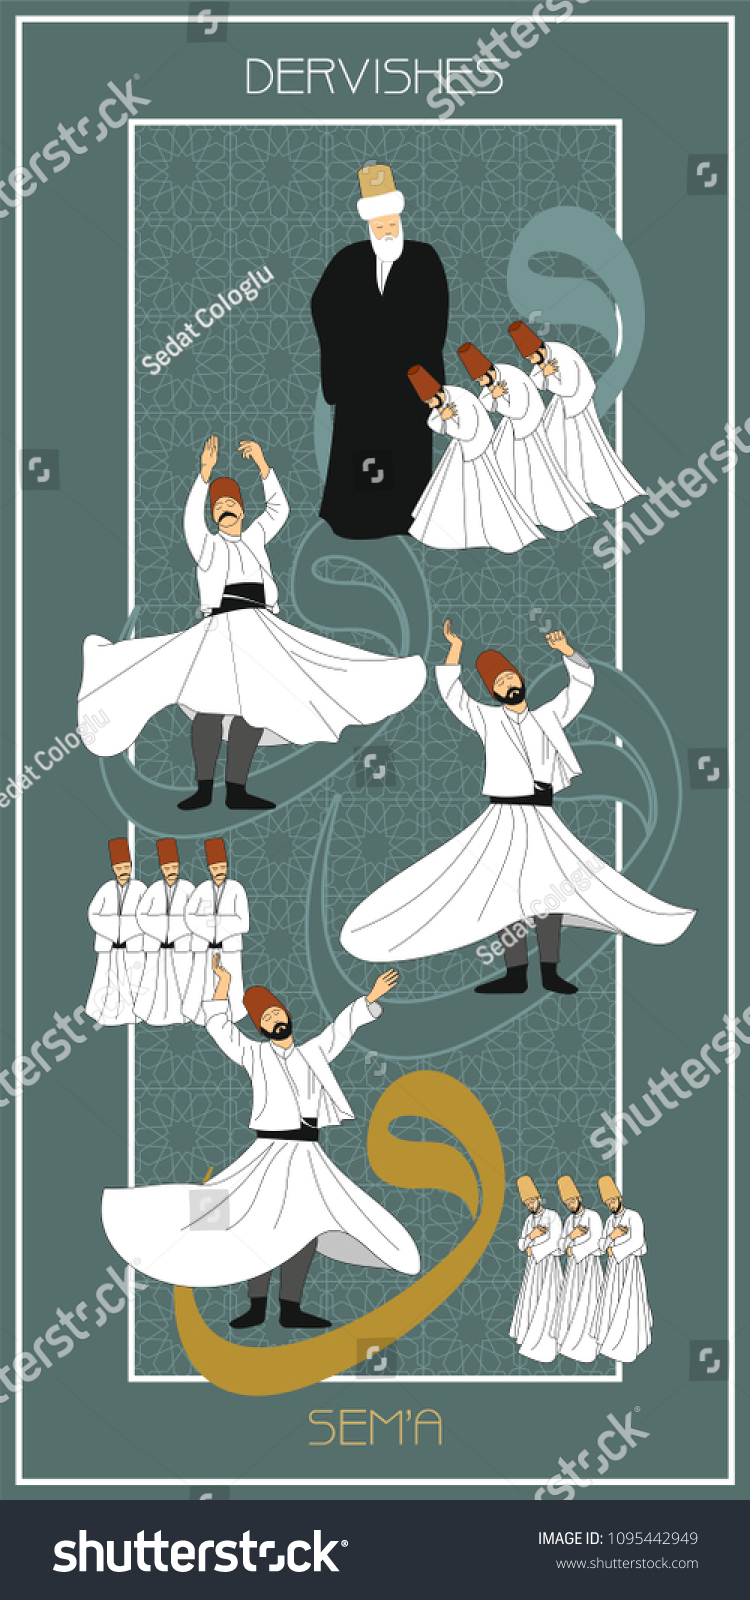 stock-vector-sema-is-a-ritual-of-mevlevi-belief-mevlevihane-mevlevi-house-is-where-these-ceremonies-took-1095442949